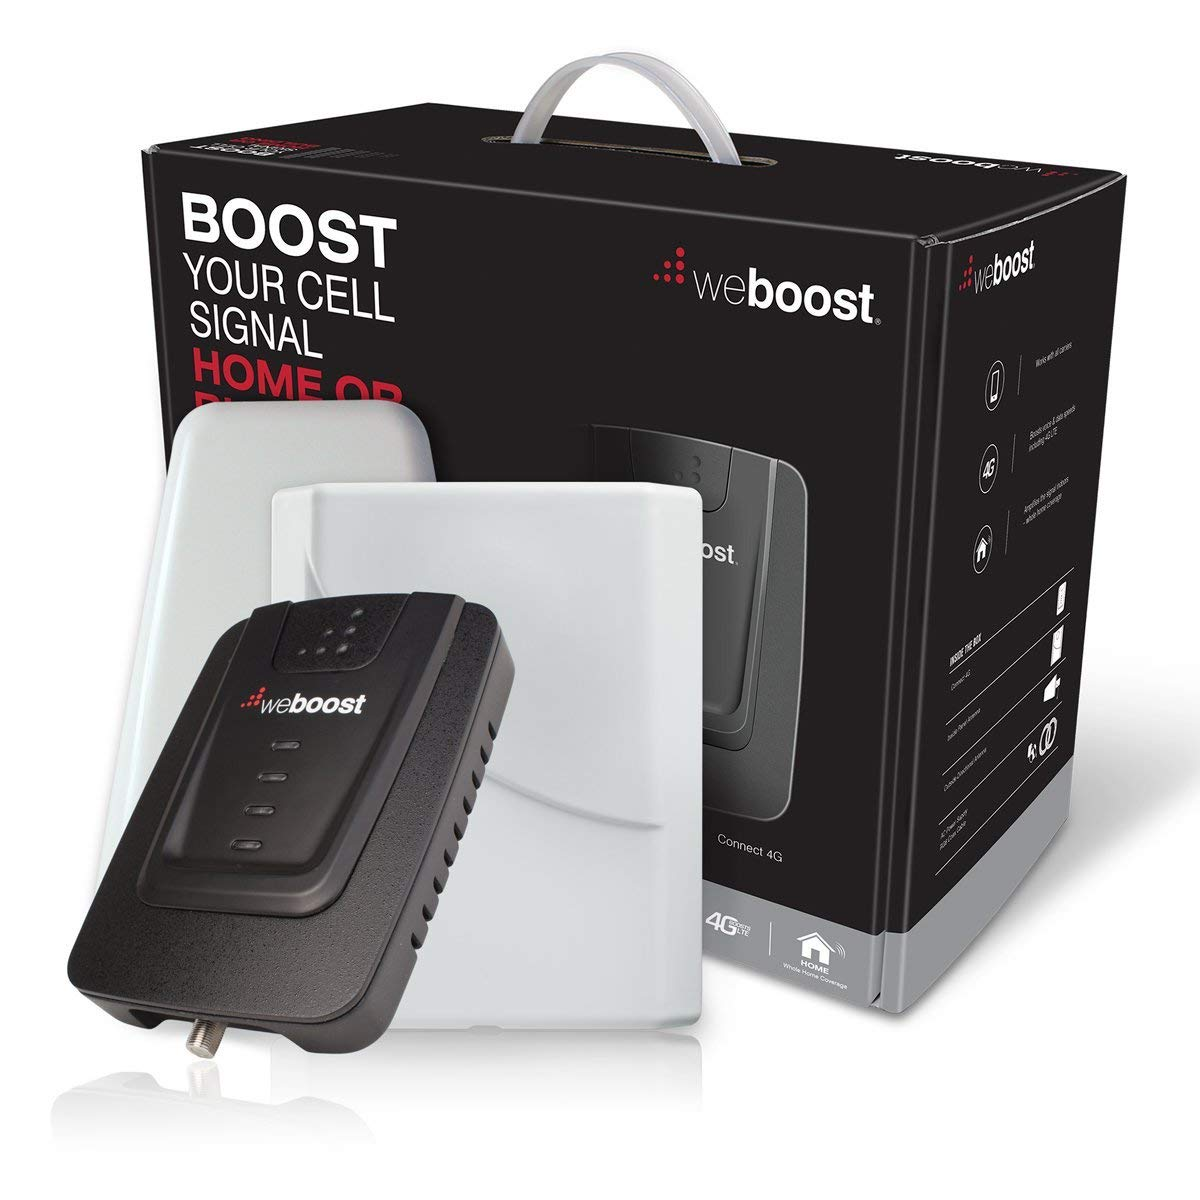 weBoost Connect 4G 470103R Indoor Cell Phone Signal Booster for Home and Office - Supports 5,000 Square Foot Area (Renewed)